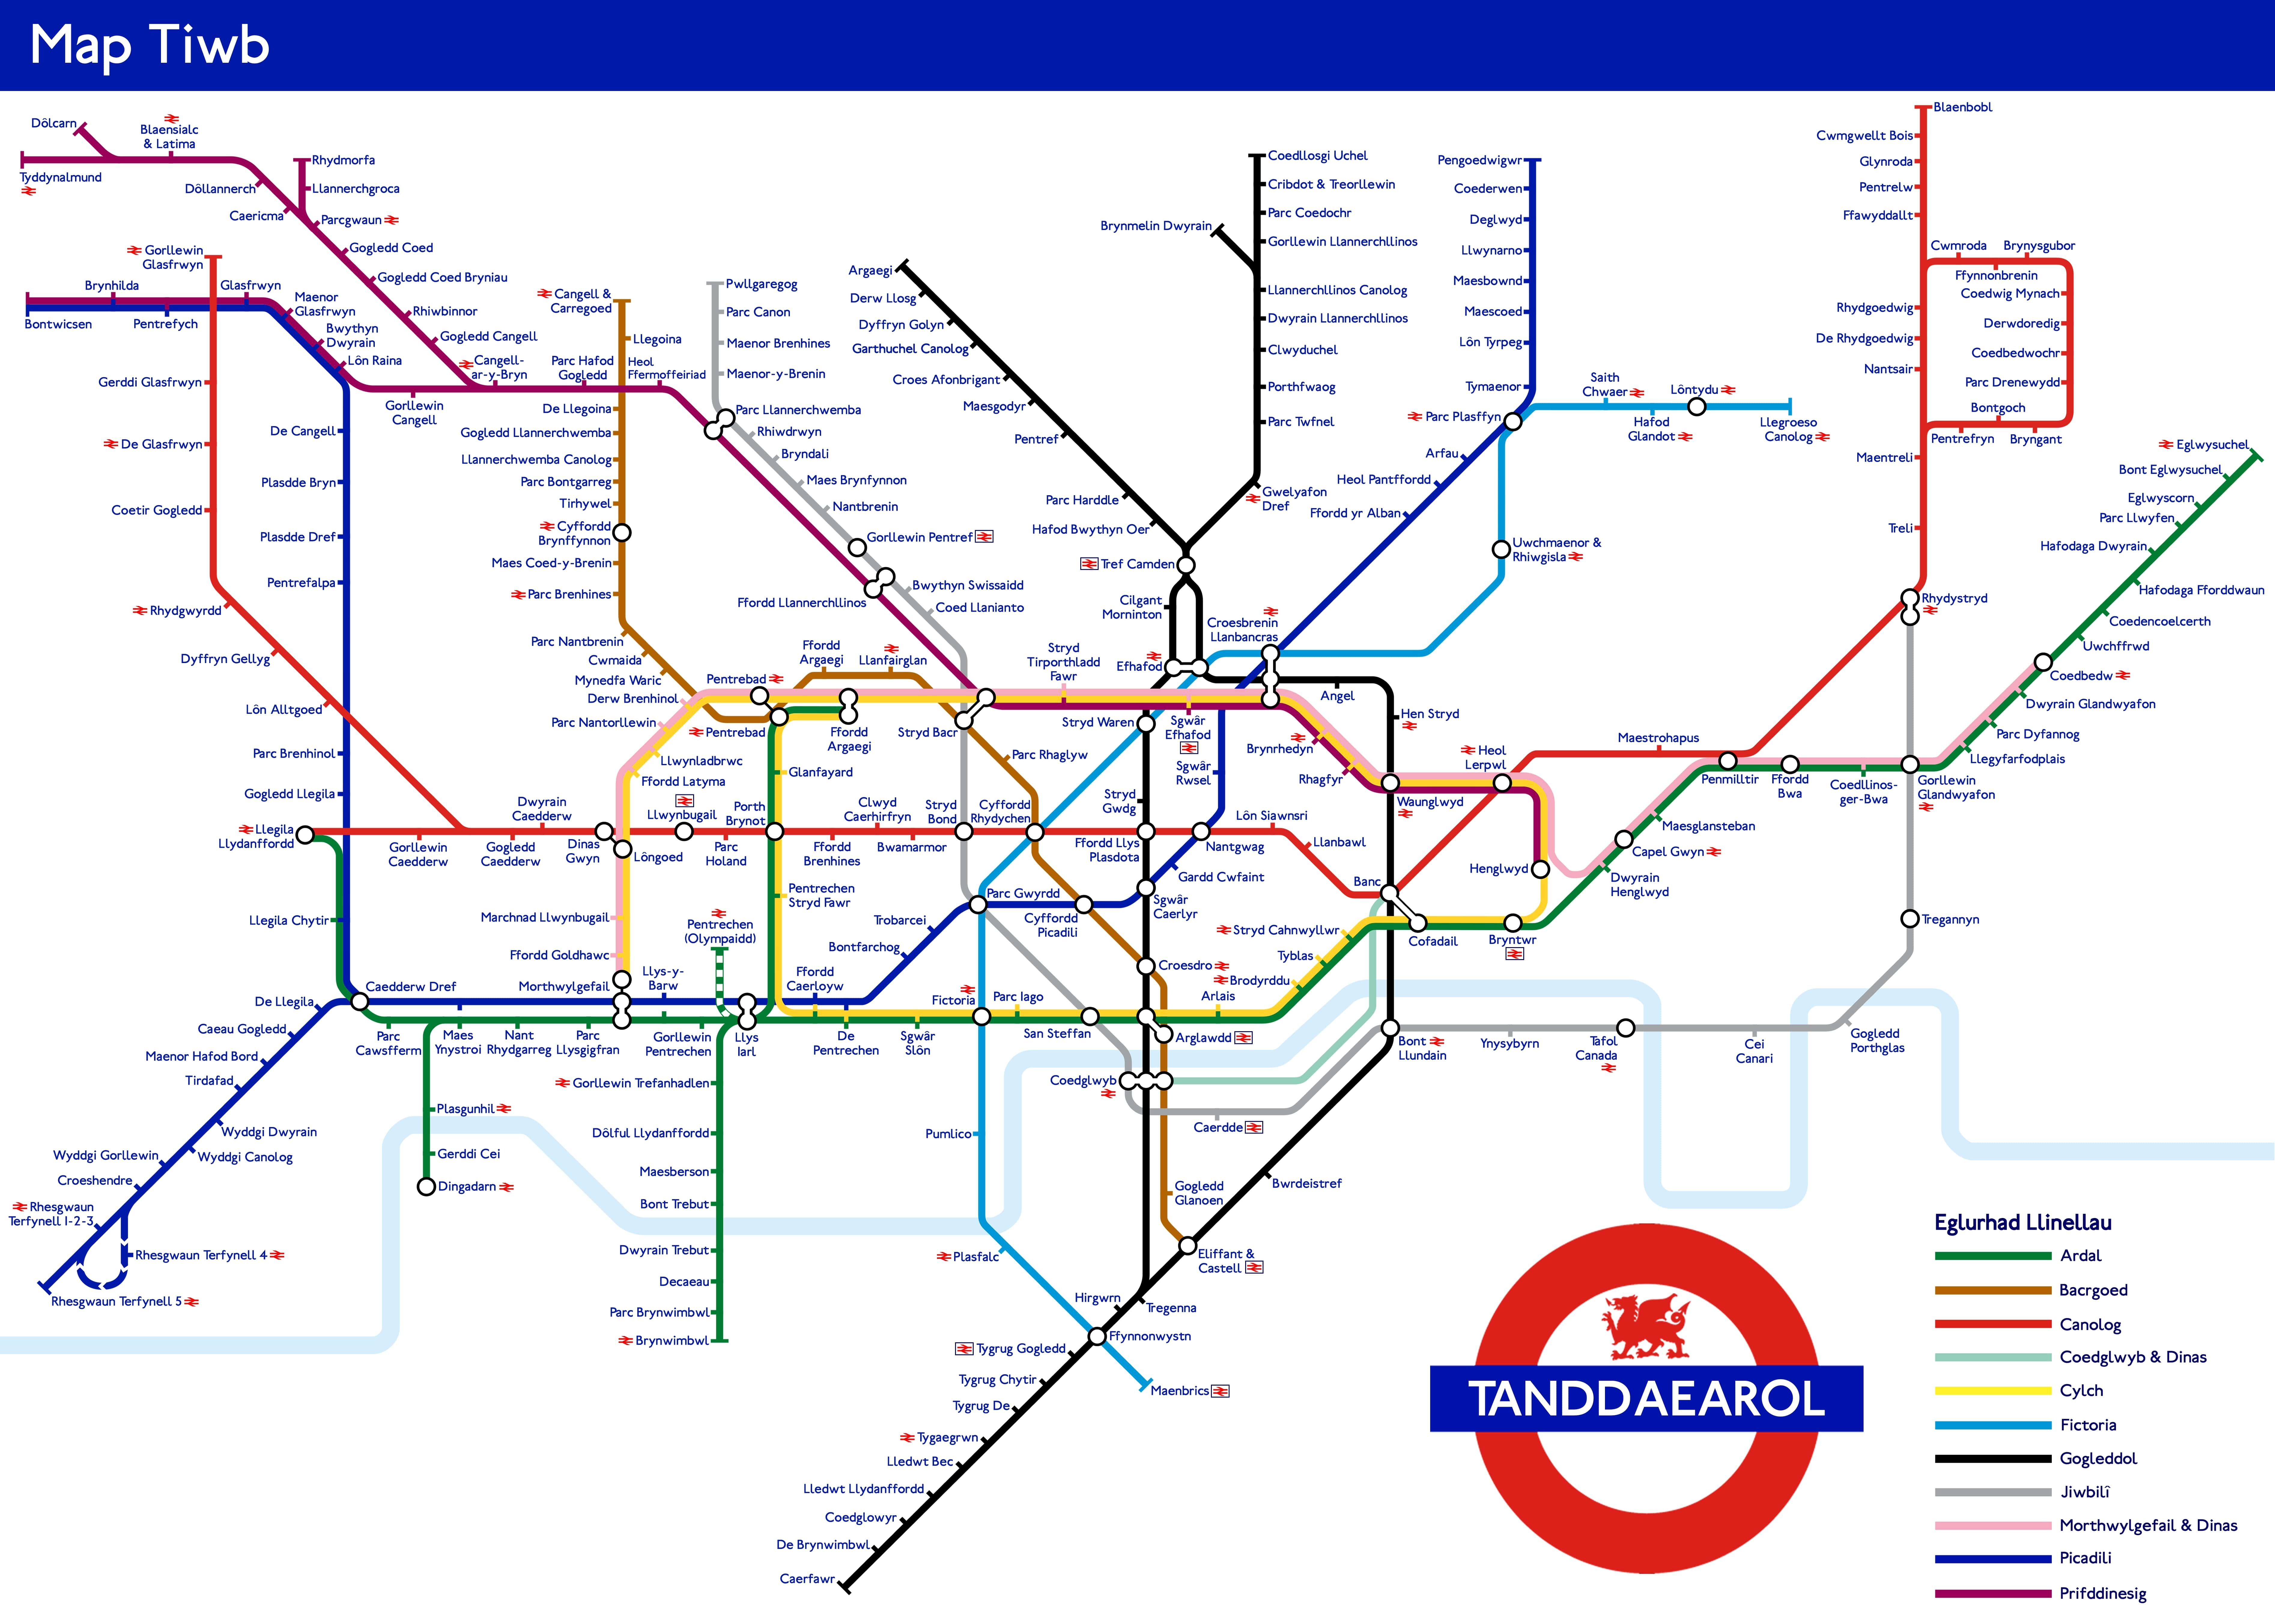 Tube Map Of London Just A London Underground Map Translated Into Welsh | Londonist